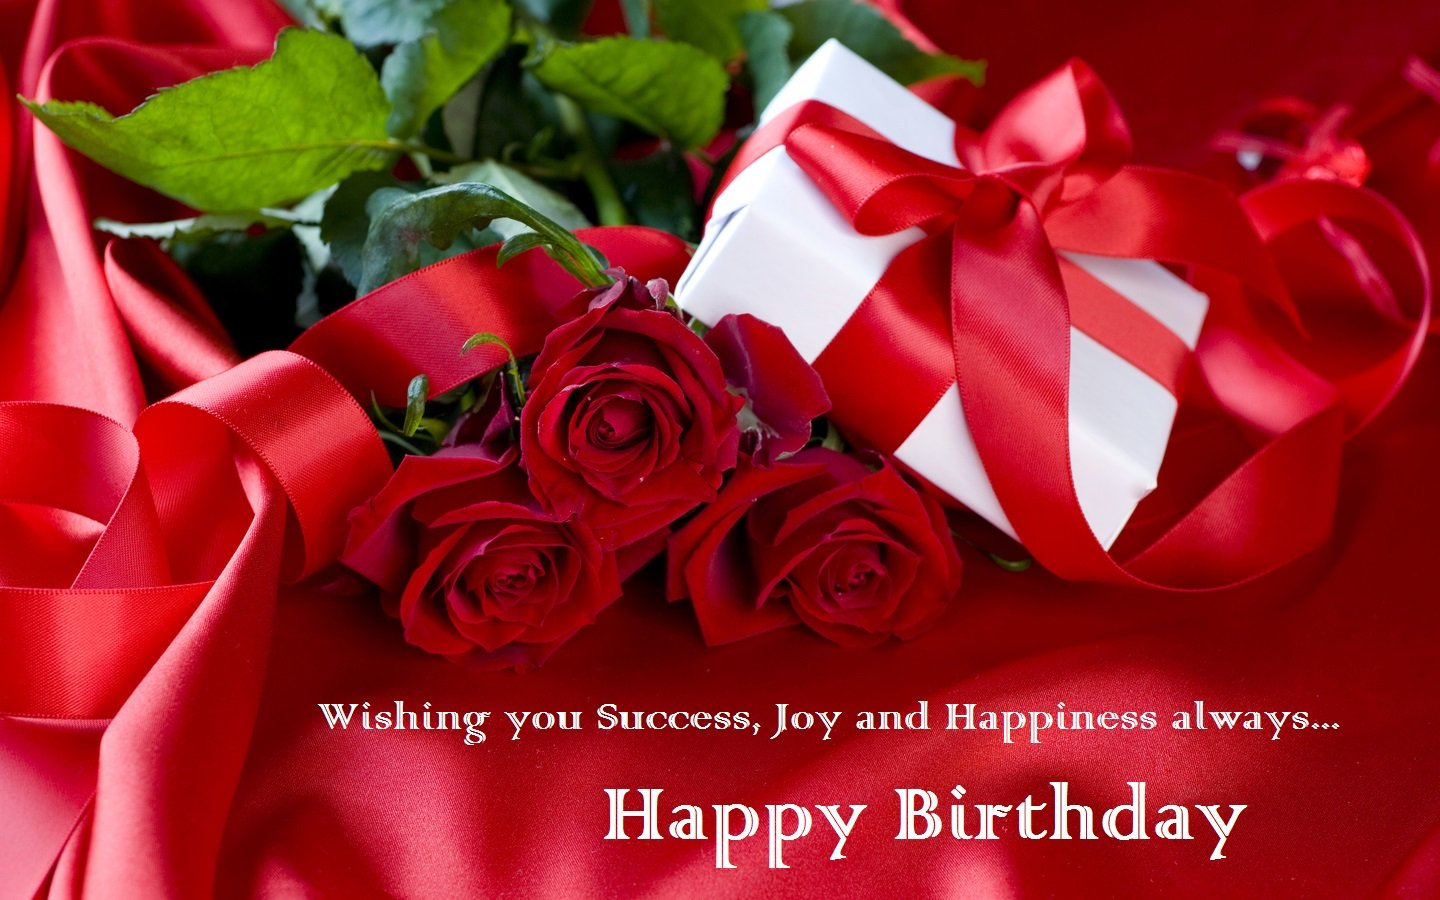 Image result for happy birthday wishes images